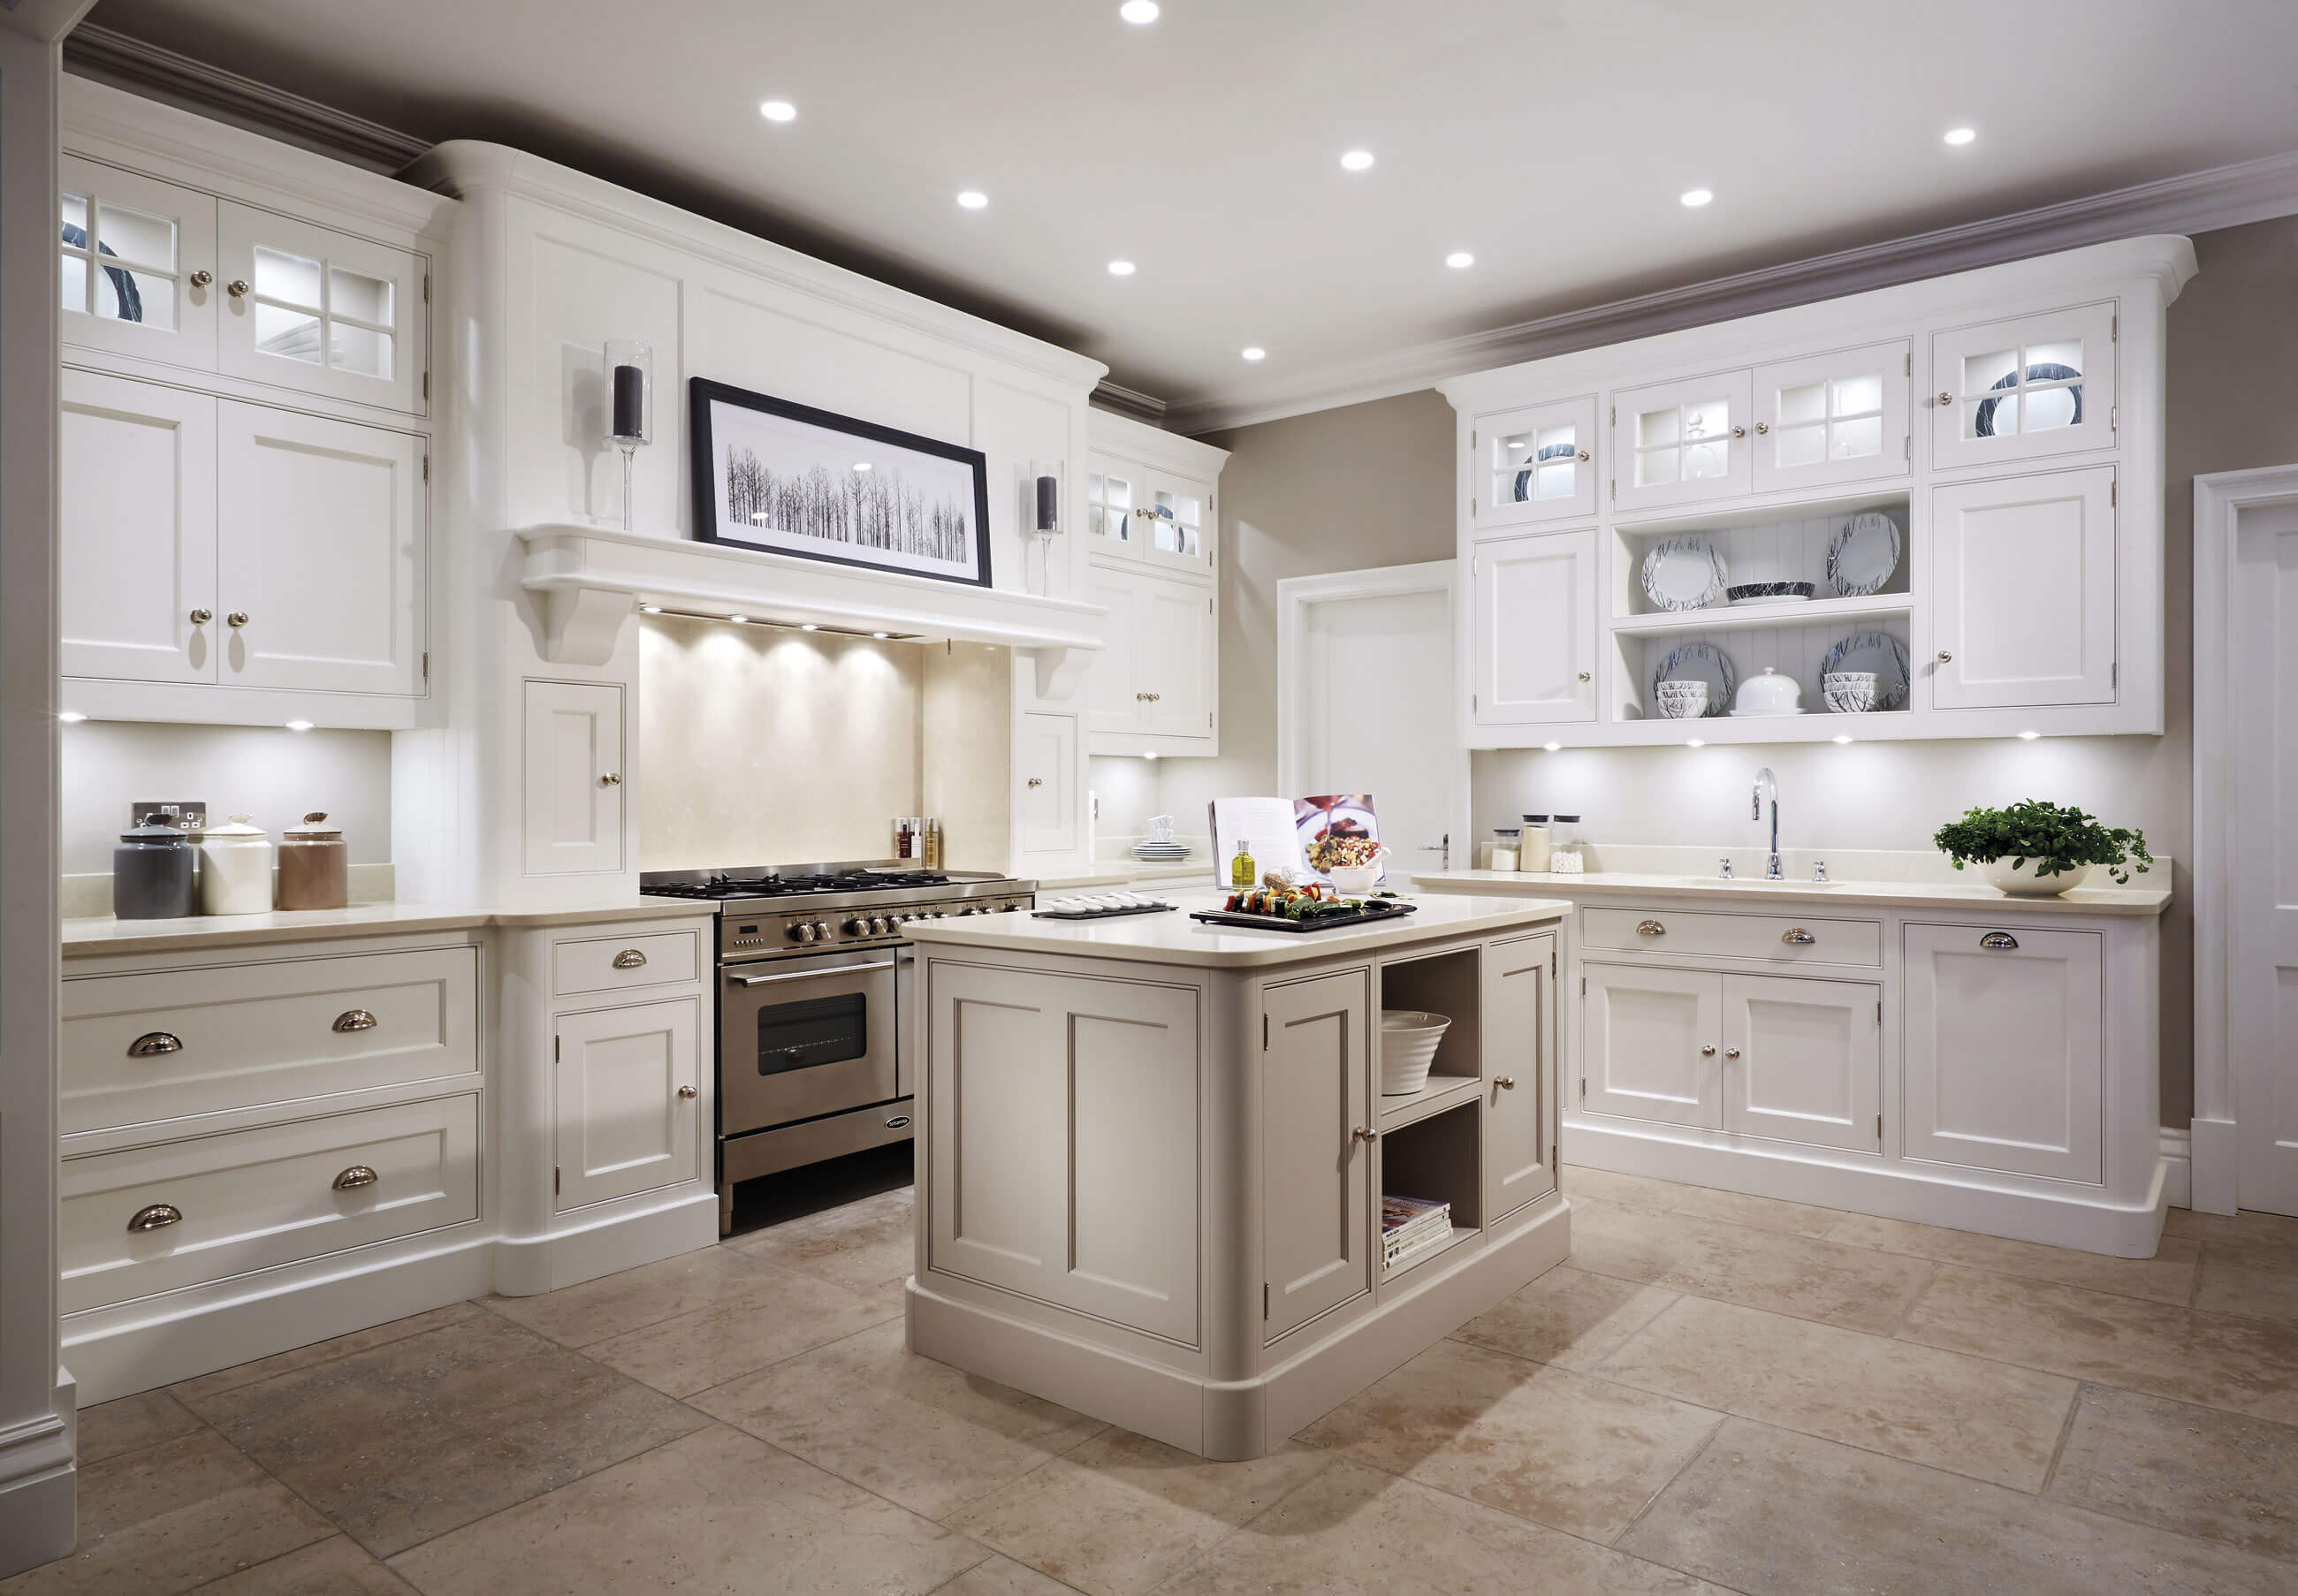 Cream painted kitchen tom howley for Kitchen design planner